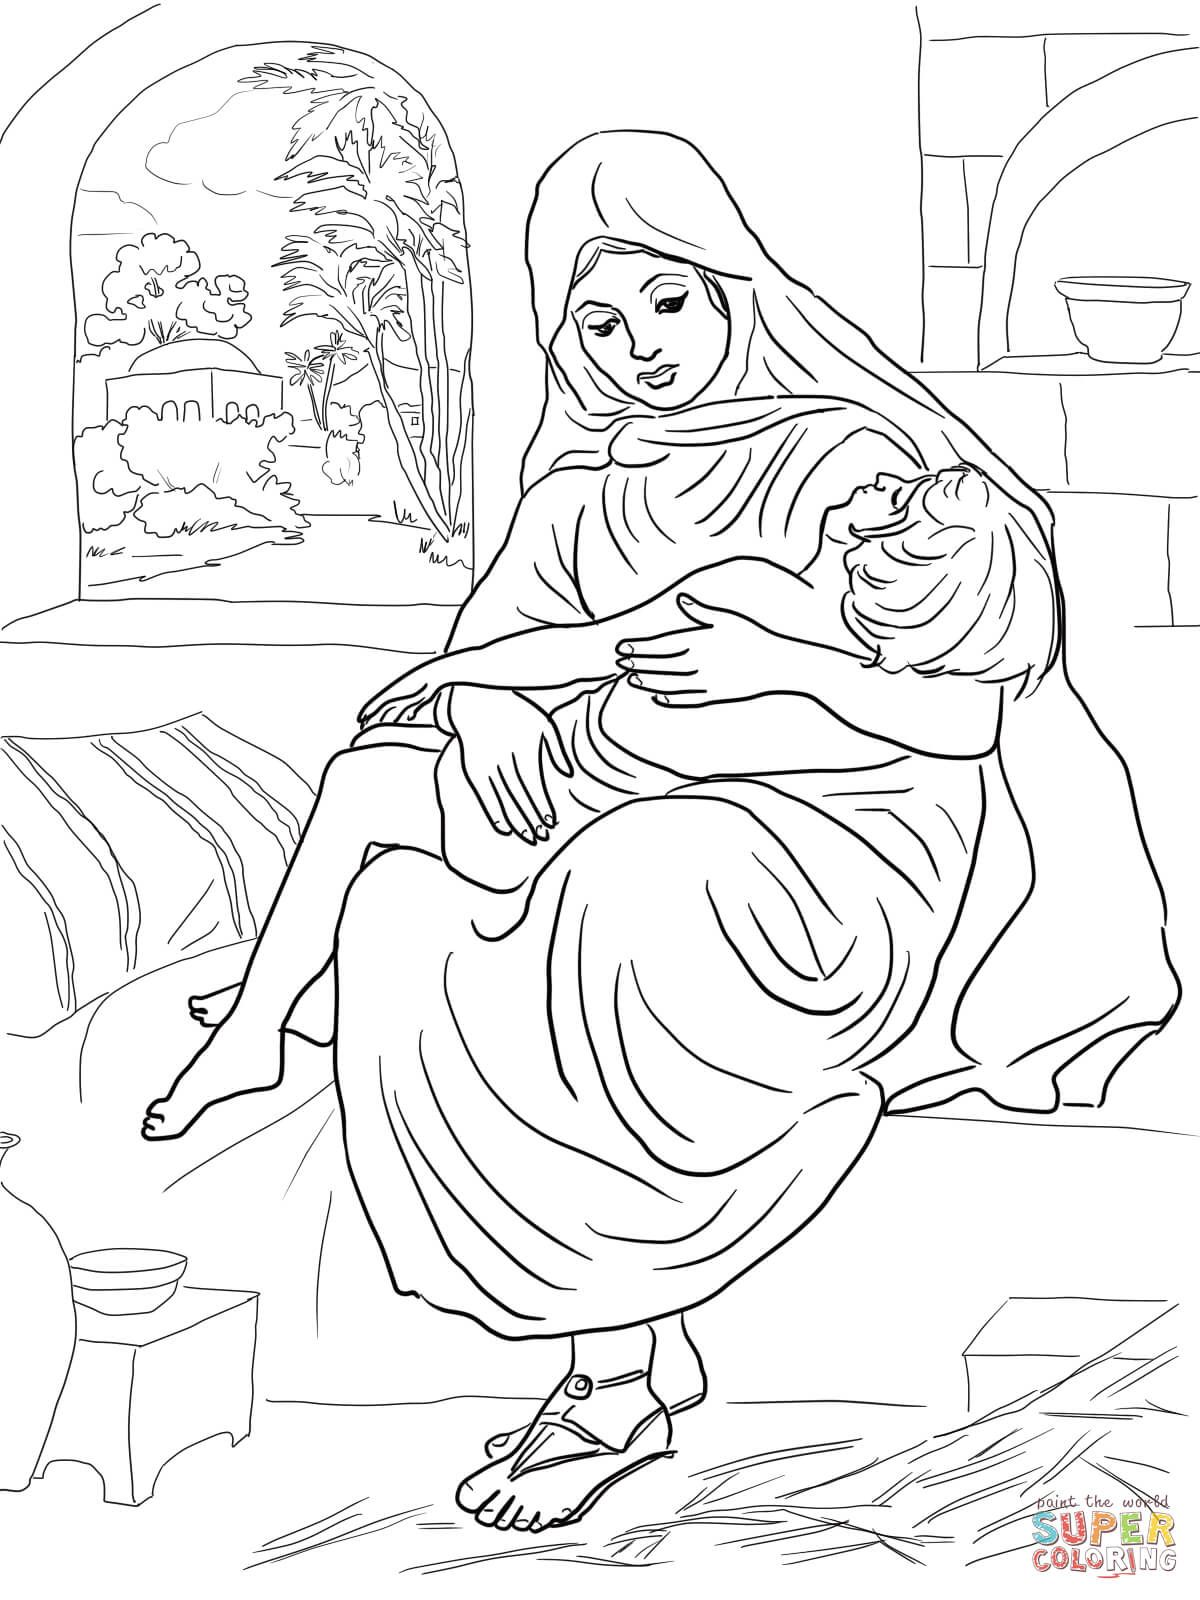 Shunammite Woman And Her Son Coloring Page Free Printable